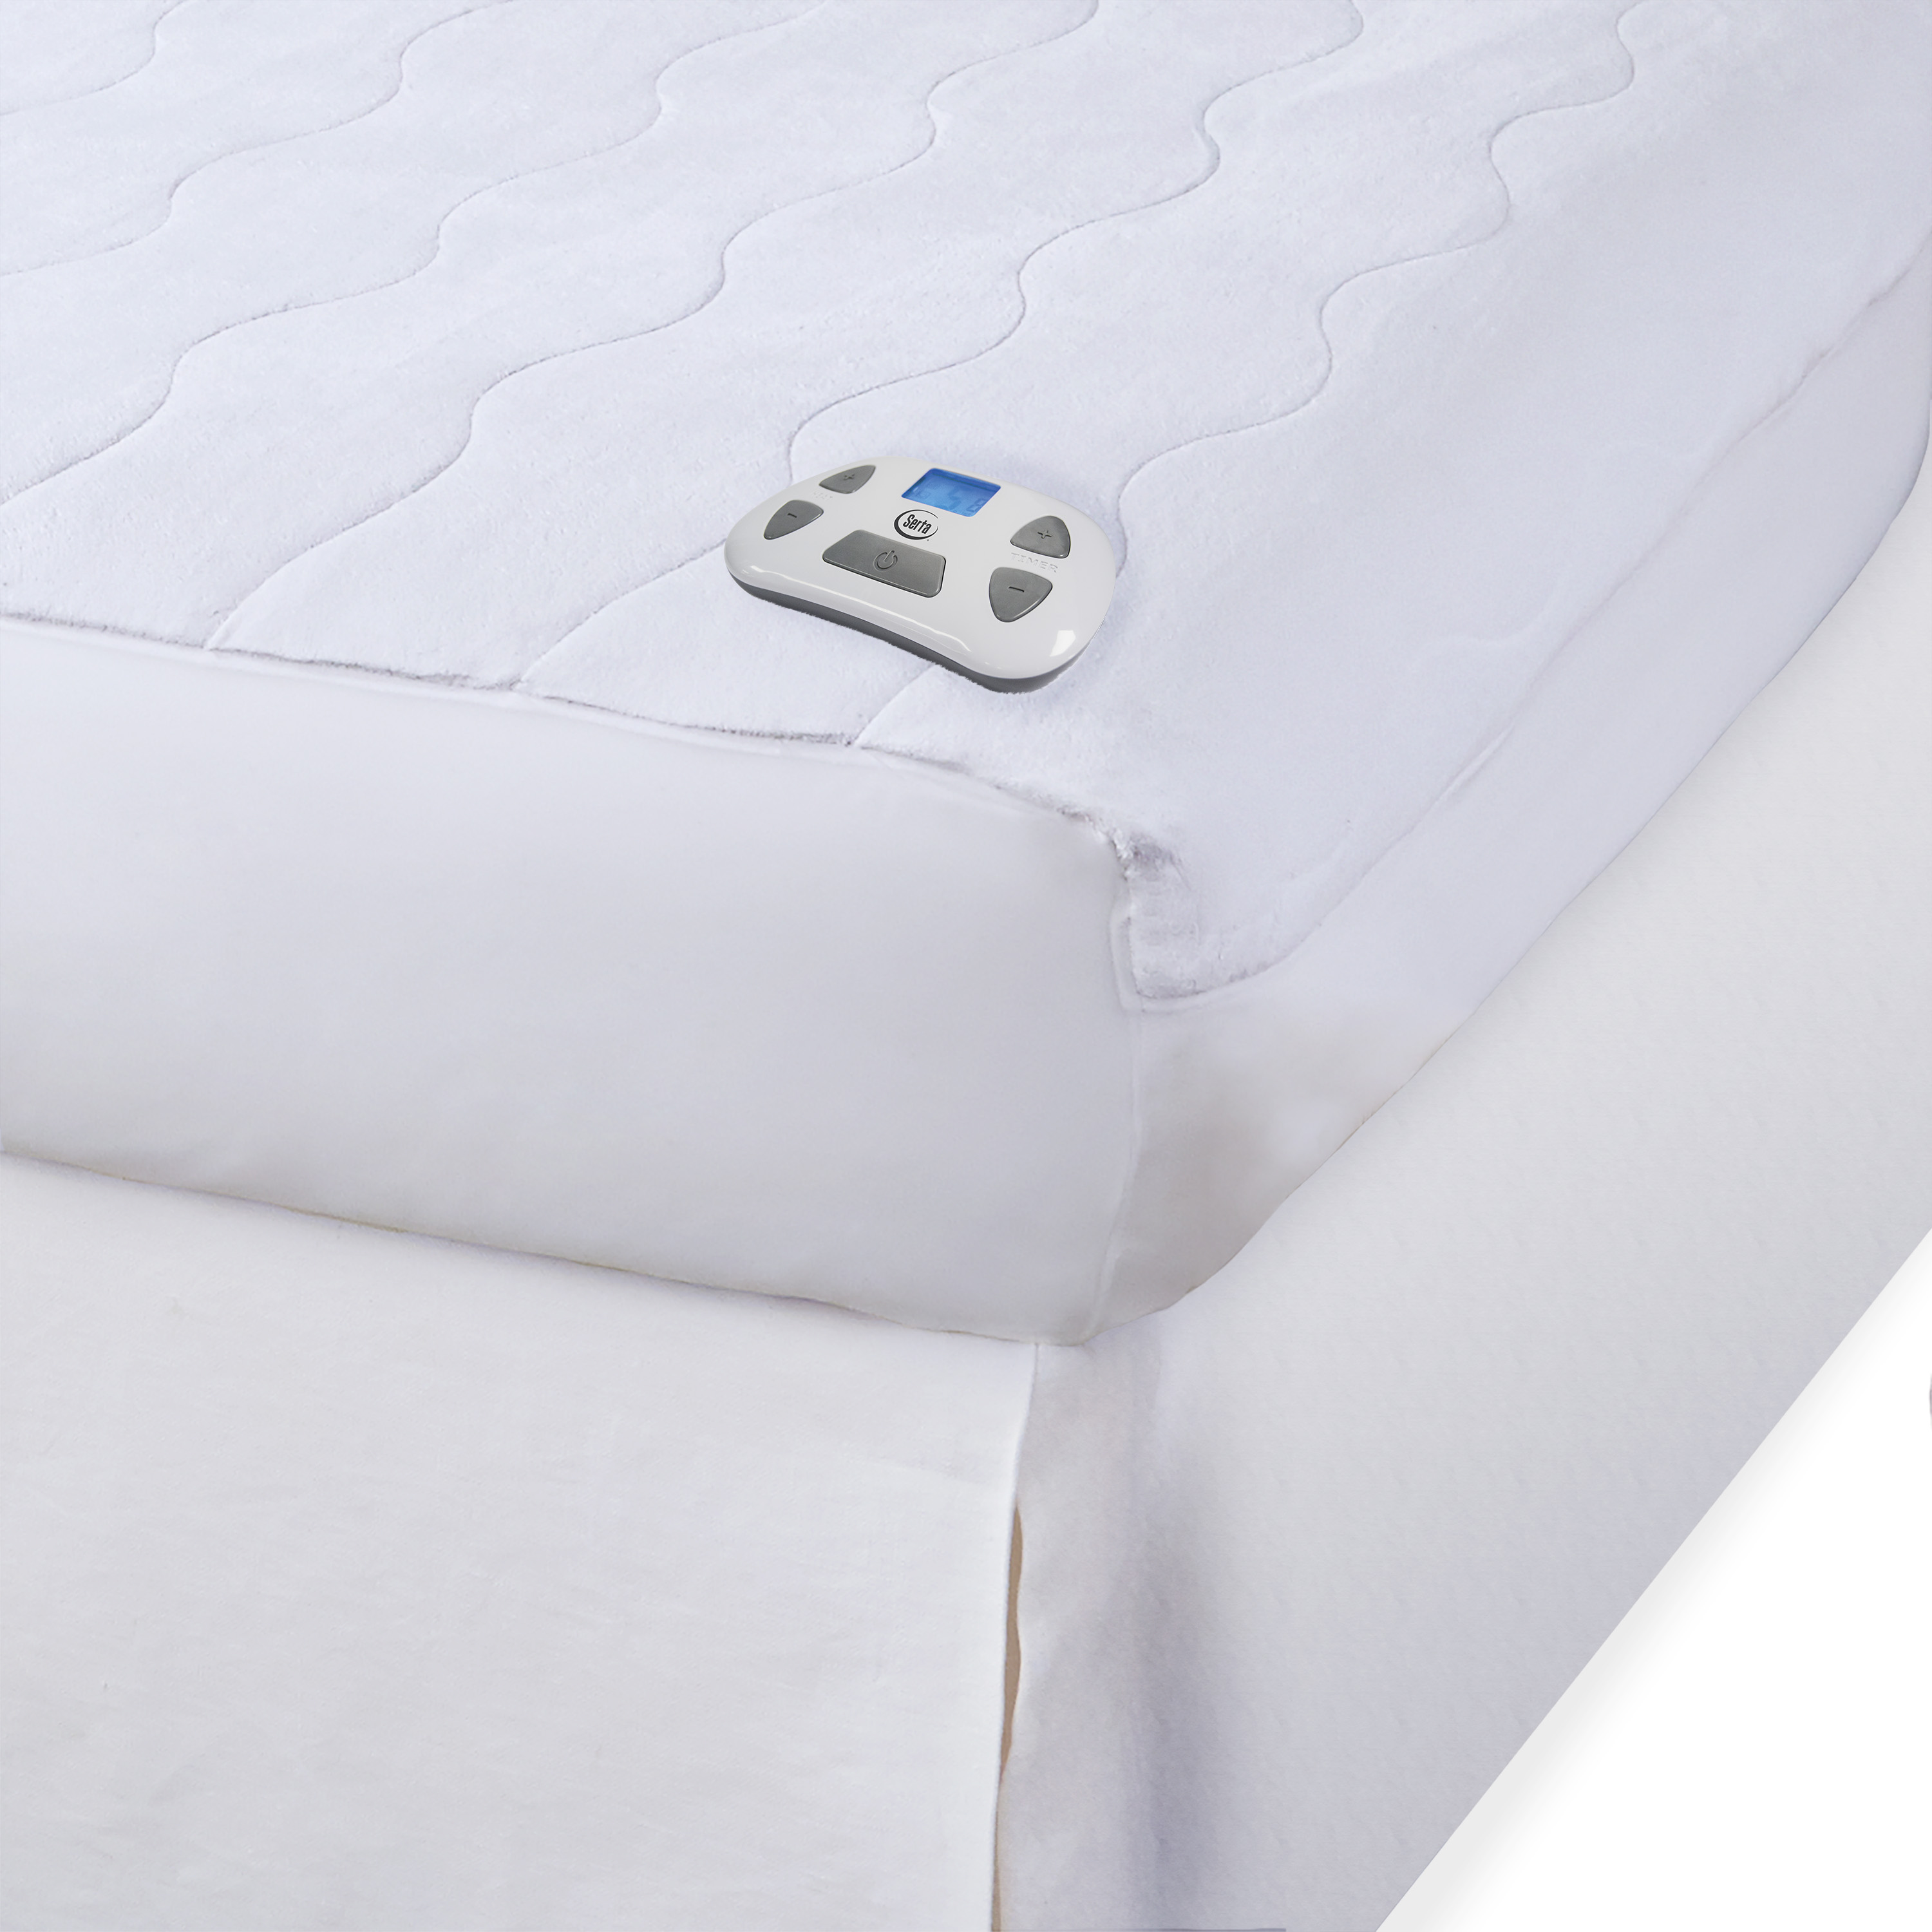 Serta Microplush Electric Heated Mattress pad with programmable digital controller - Walmart.com